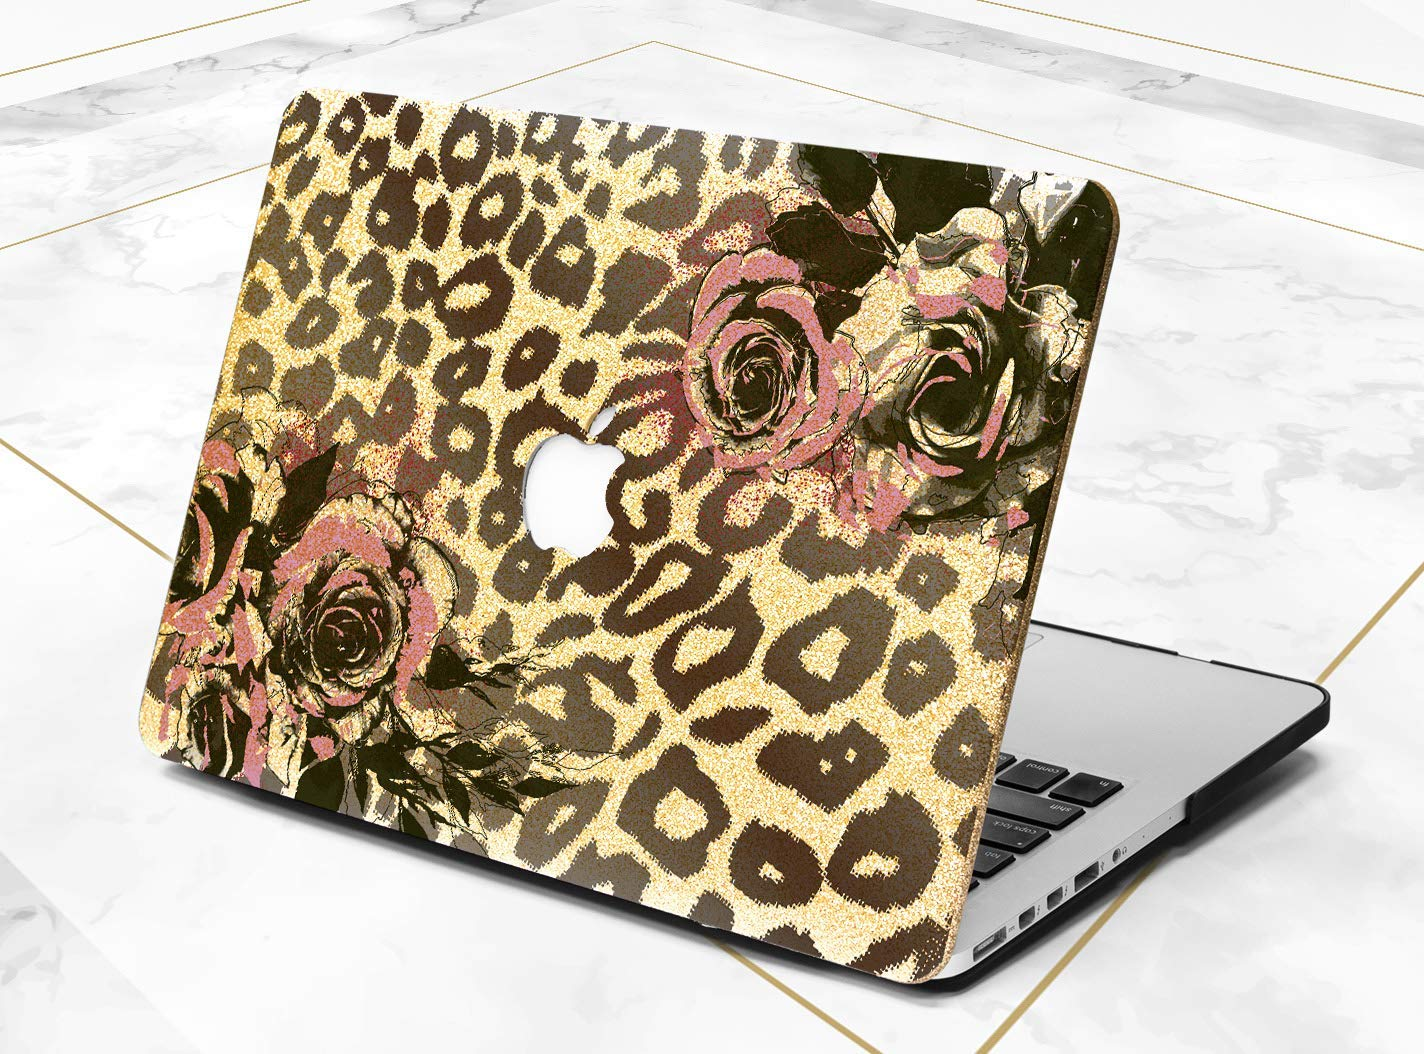 Leopard Floral Design Gold Rose Gold Hard Plastic Glitter Case Cover For Apple Macbook Air 11 13 Macbook 12 Macbook Pro 13 15 Inch 2016 2017 With Retina Display Touch Bar